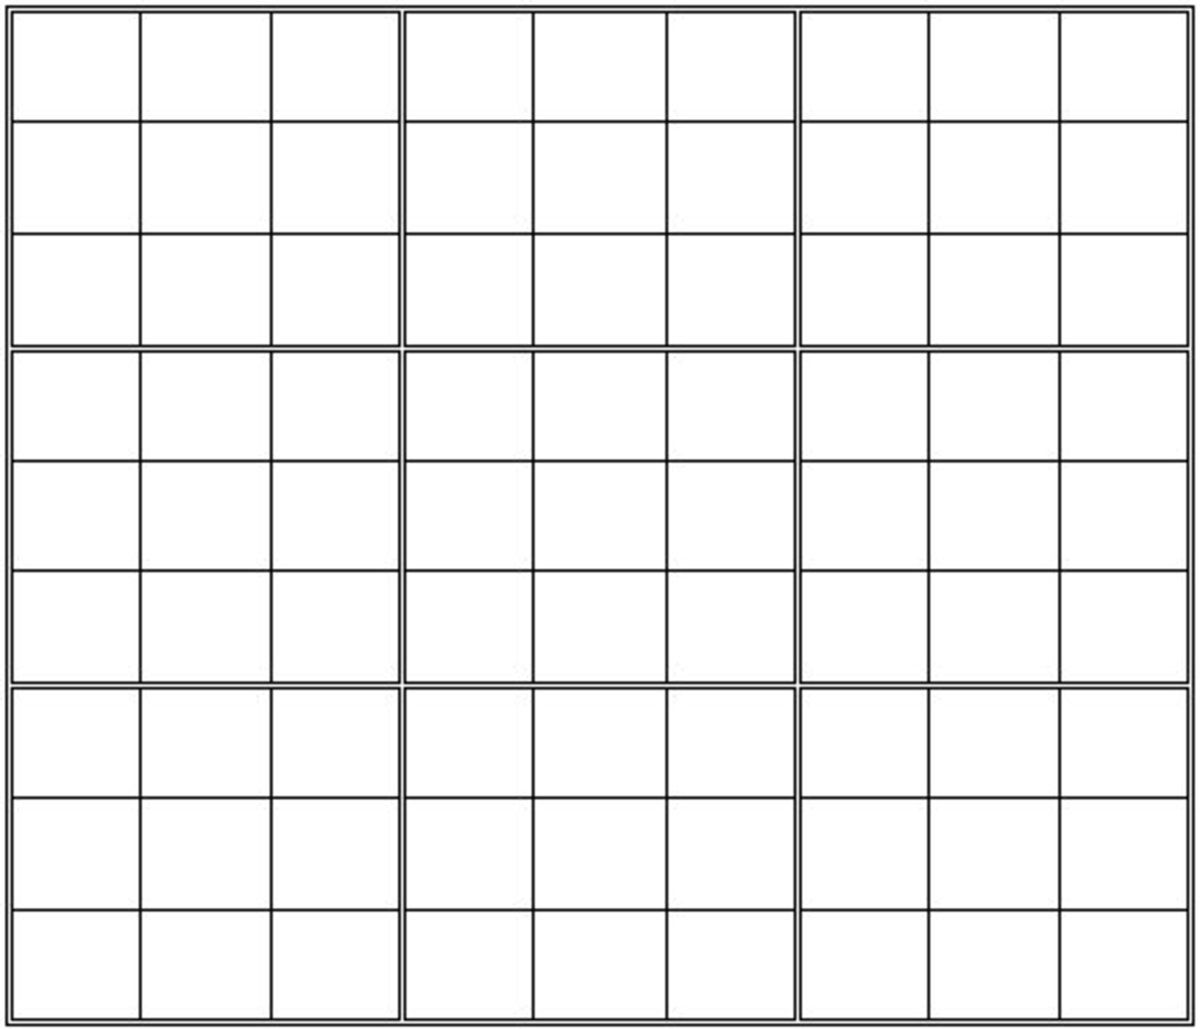 graphic regarding Printable Sudoku Grid named Printable Blank Sudoku Grid HubPages